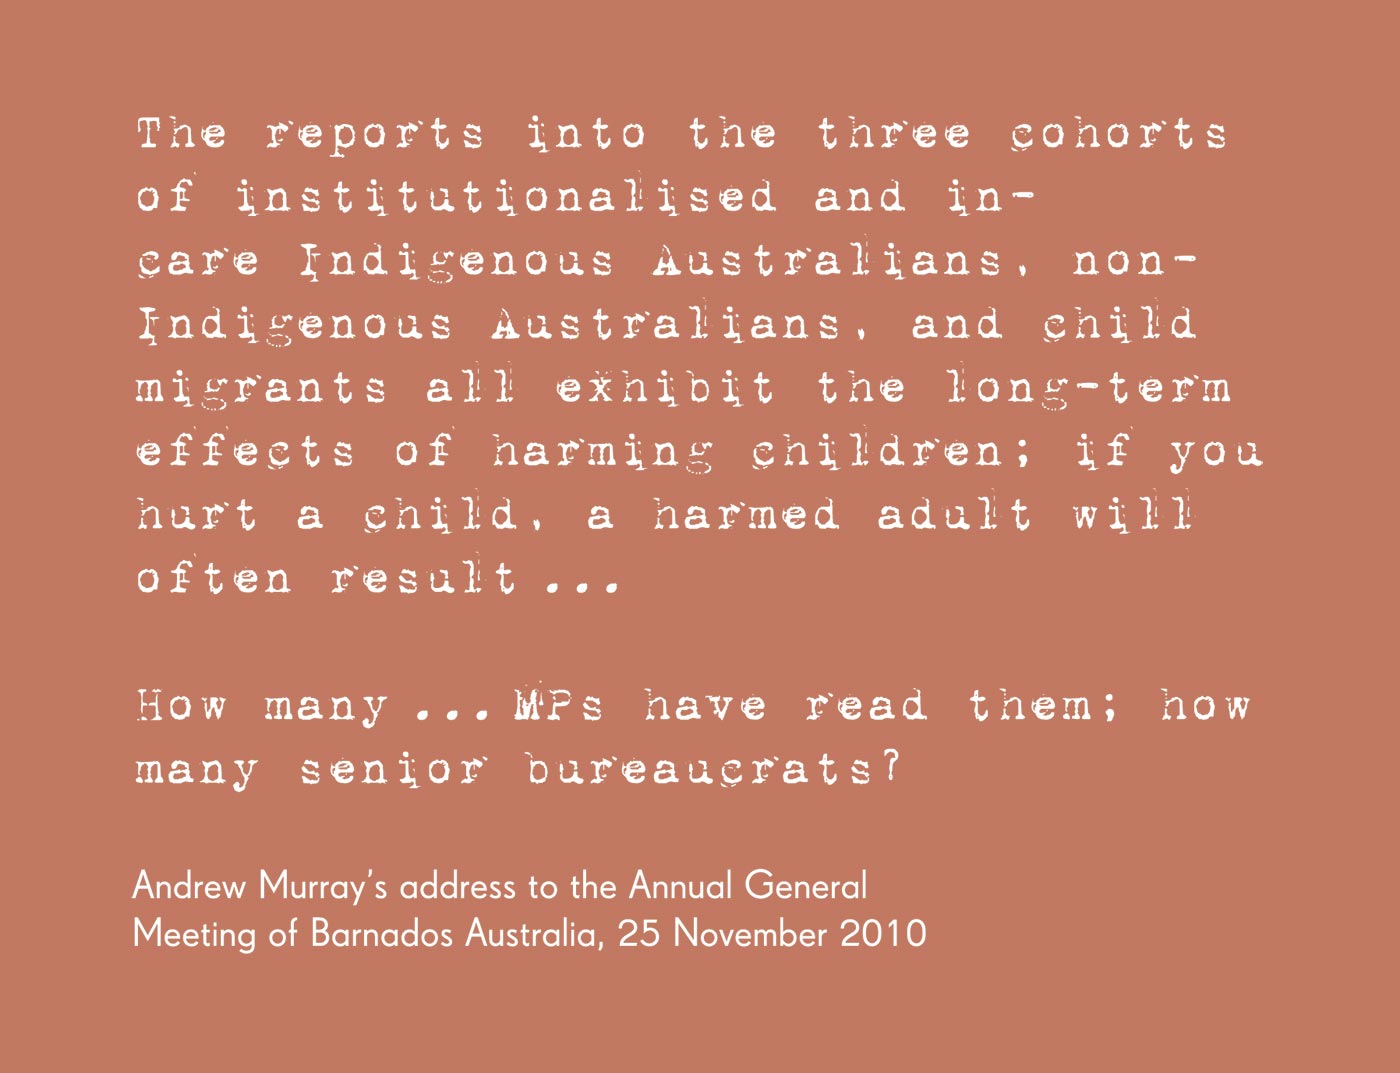 Exhibition graphic panel that reads: 'The reports into the three cohorts of institutionalised and in-care Indigenous Australians, non-Indigenous Australians, and child migrants all exhibit the long-term effects of harming children; if you hurt a child, a harmed adult will often result ... How many ... MPs have read them; how many senior bureaucrats?', attributed to 'Andrew Murray's address to the Annual General Meeting of Barnados Australia, 25 November 2010'. - click to view larger image